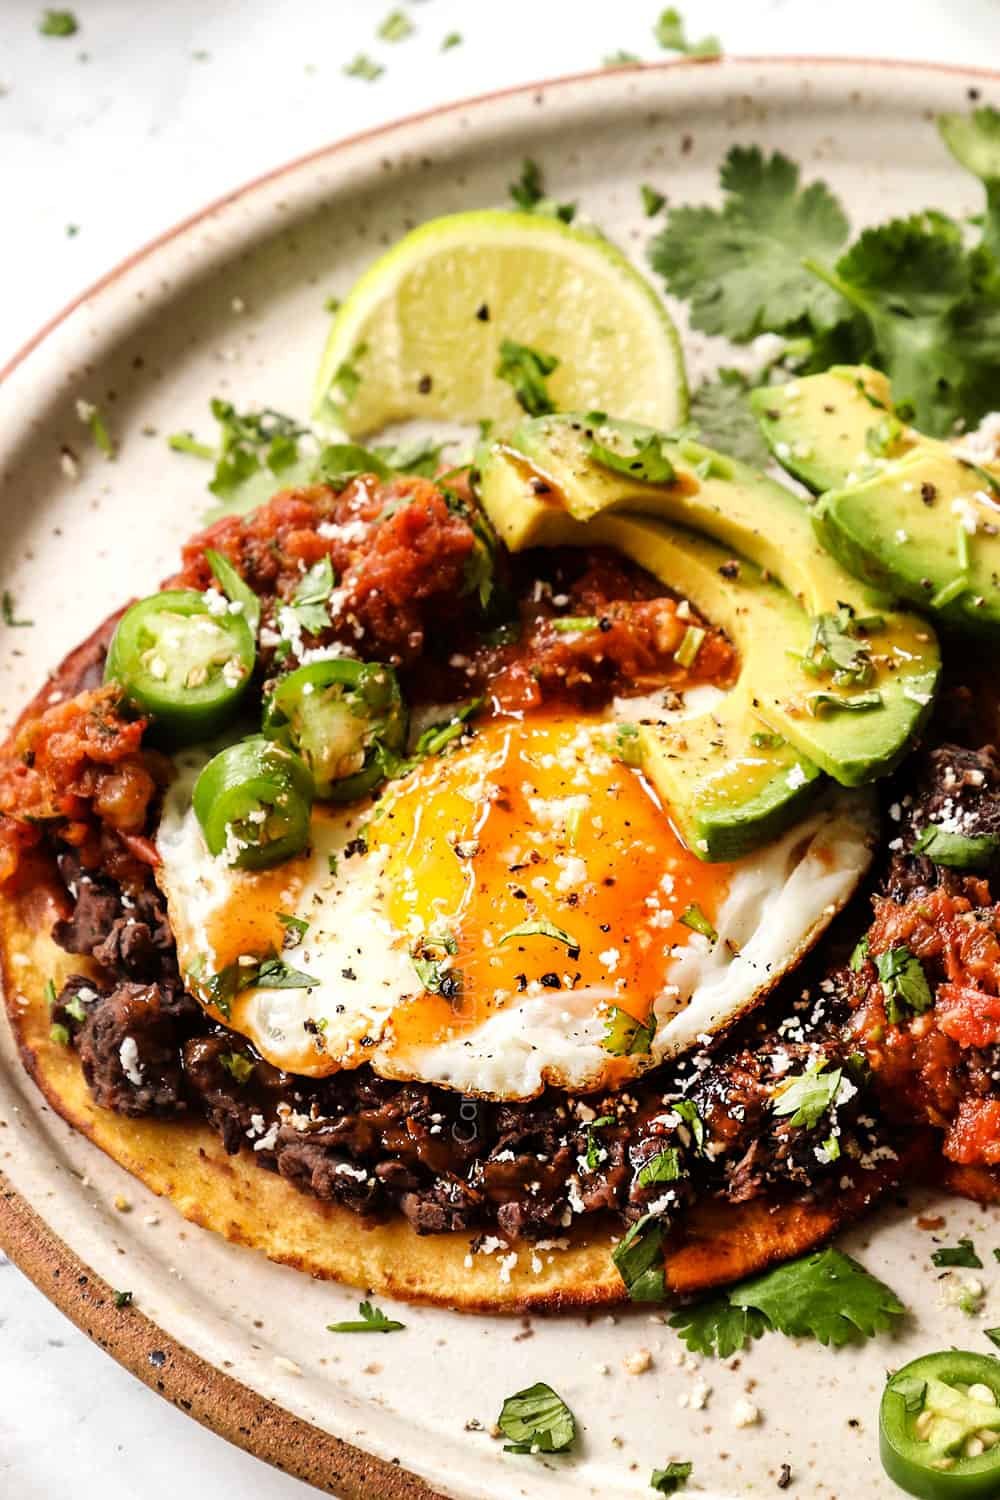 up close of Huevos Ranchers showing how to layer them: corn tortilla, refried beans, fried eggs, salsa and toppings of sliced avocado, Cotija cheese, cilantro and hot sauce